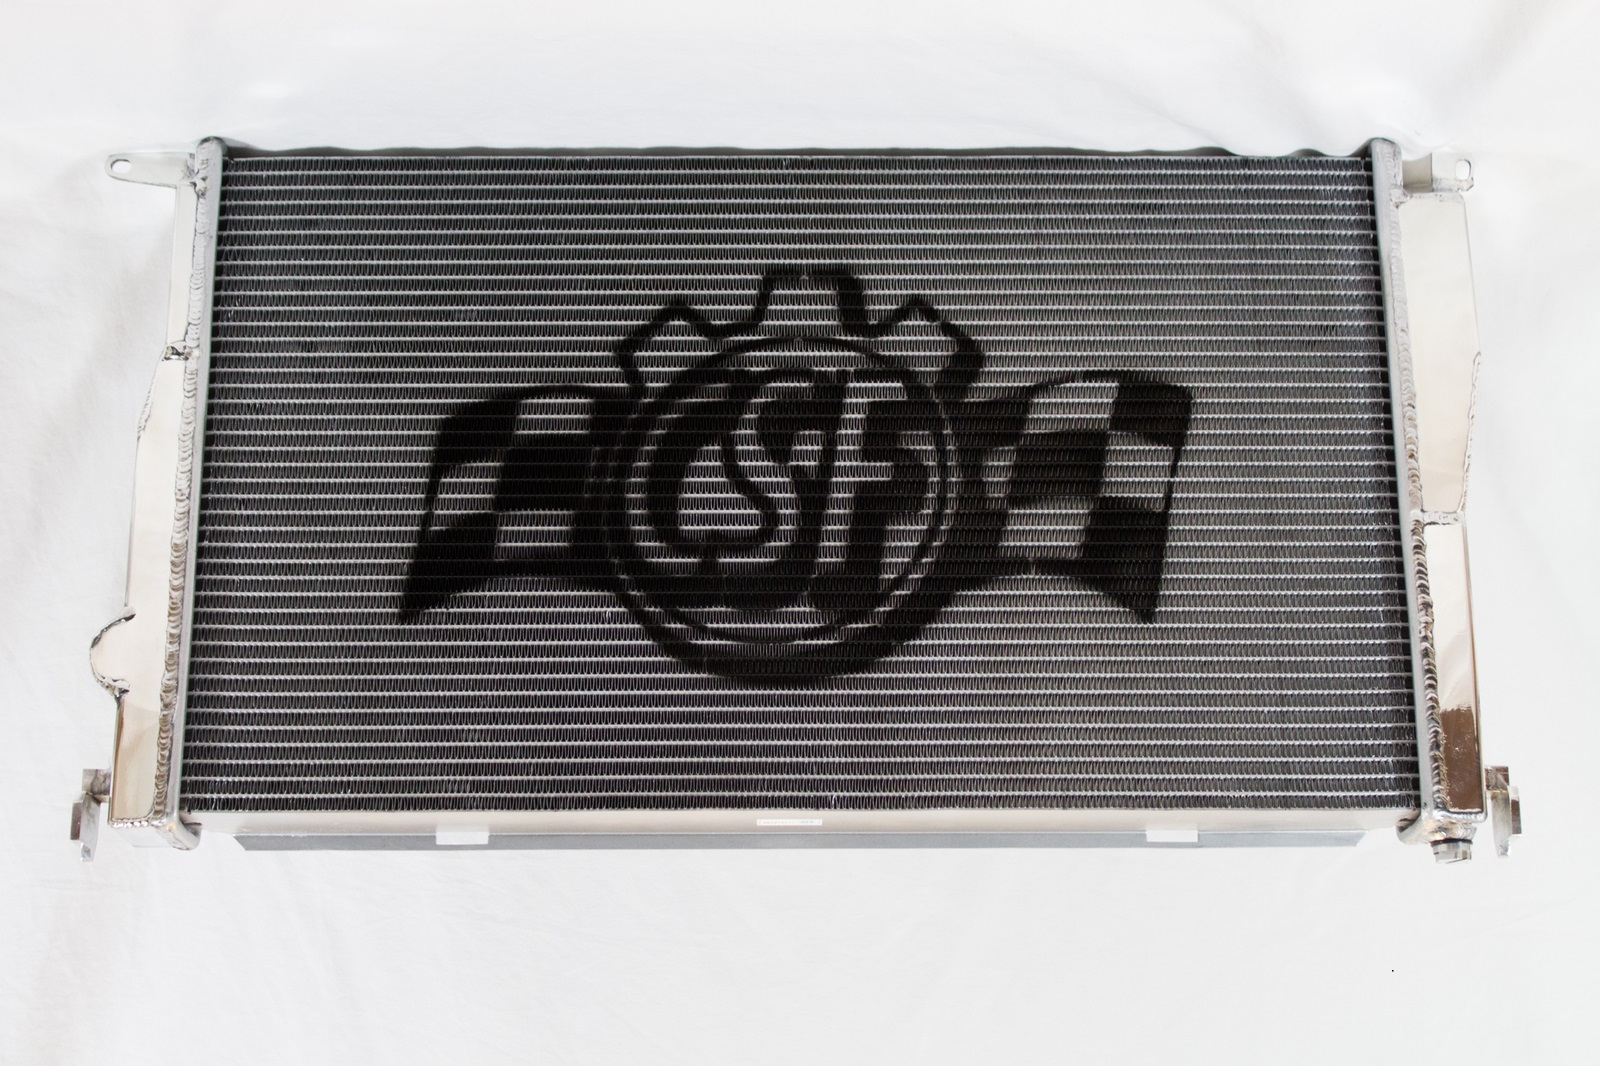 CSF Radiator for the E chassis BMW 135 and 335 N54 and N55 engine is now  available.